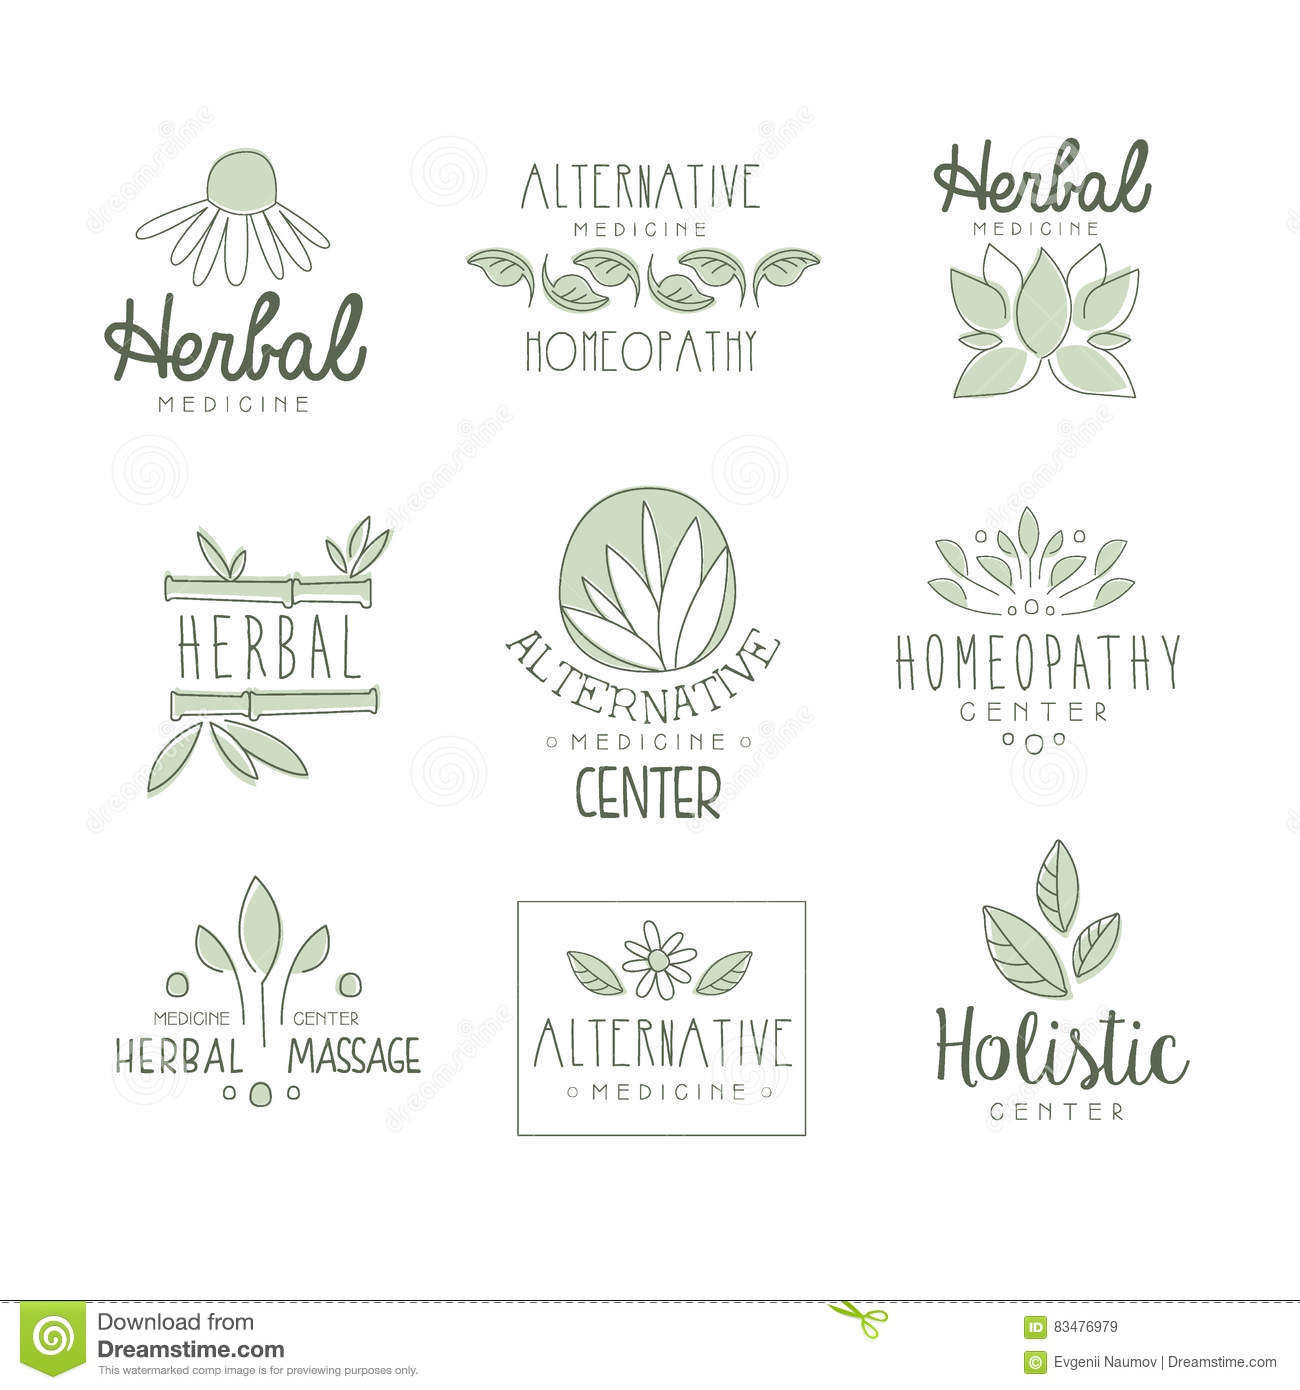 Center for holistic herbal therapy - Alternative Medicine Center With Oriental Herbal Treatment And Holistic Massage Procedures Set Of Label Templates Royalty